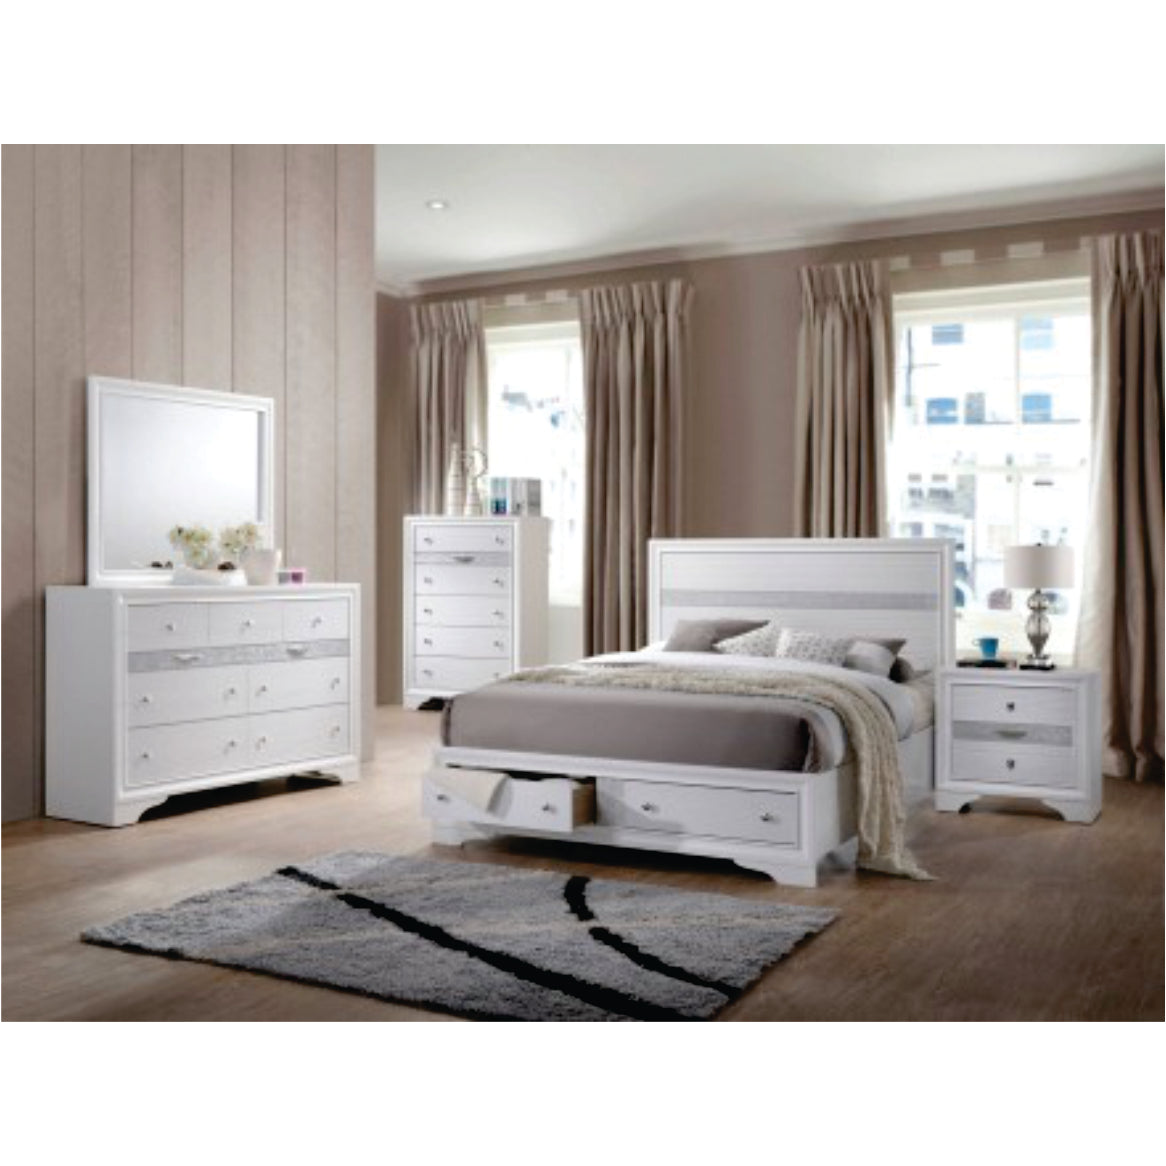 Naima White 5 Piece Bedroom Set Available In King And Queen Furniture 4 Less Canada